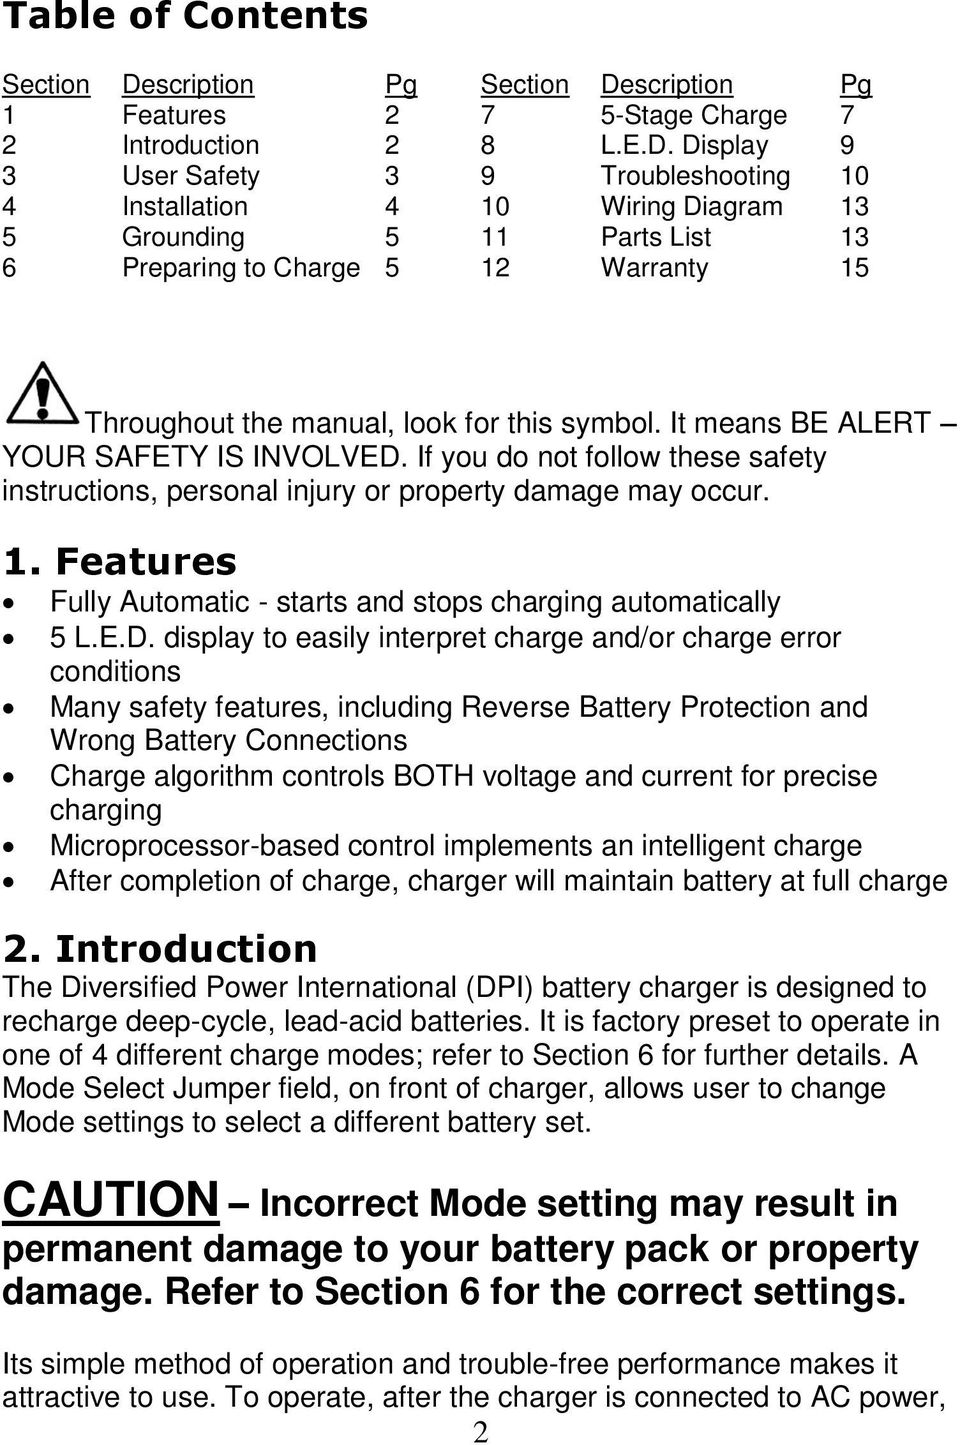 Accusense Battery Charger Wiring Diagram : Accusense charge series on off board fully automatic